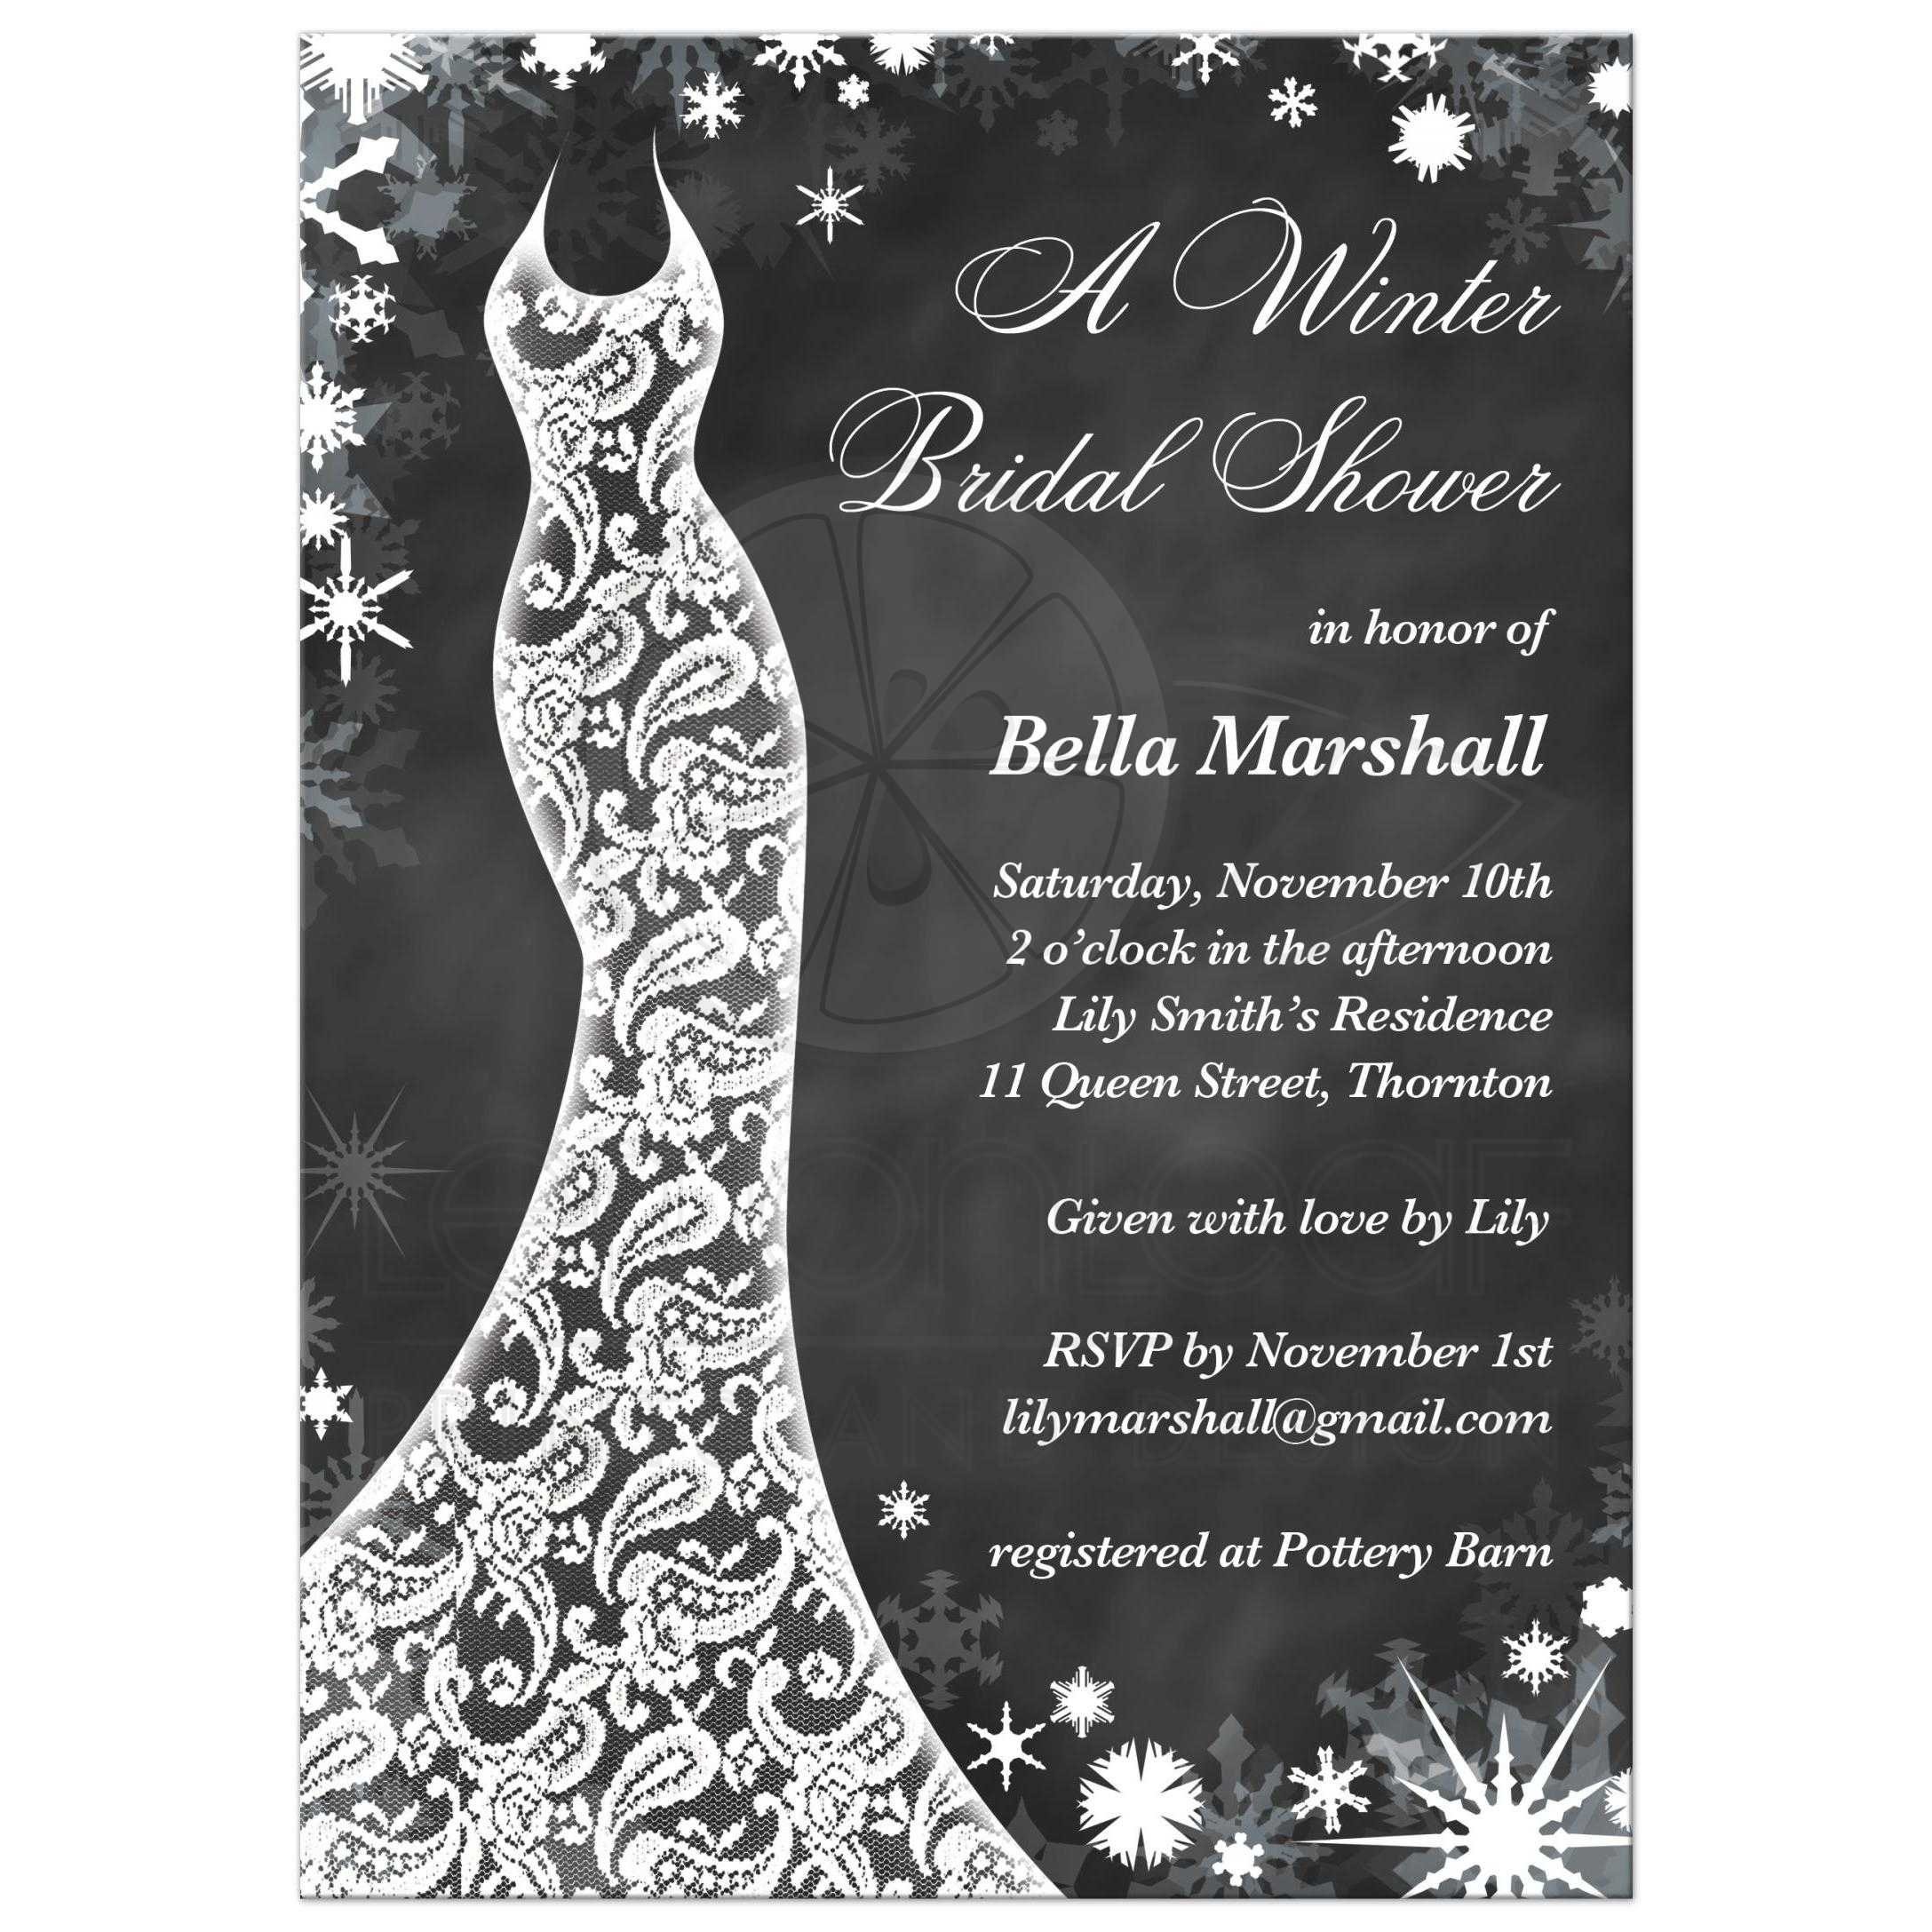 Bridal shower invitation beautiful winter chalkboard snowflakes and a lacy wedding dress decorate this winter bridal shower invitation filmwisefo